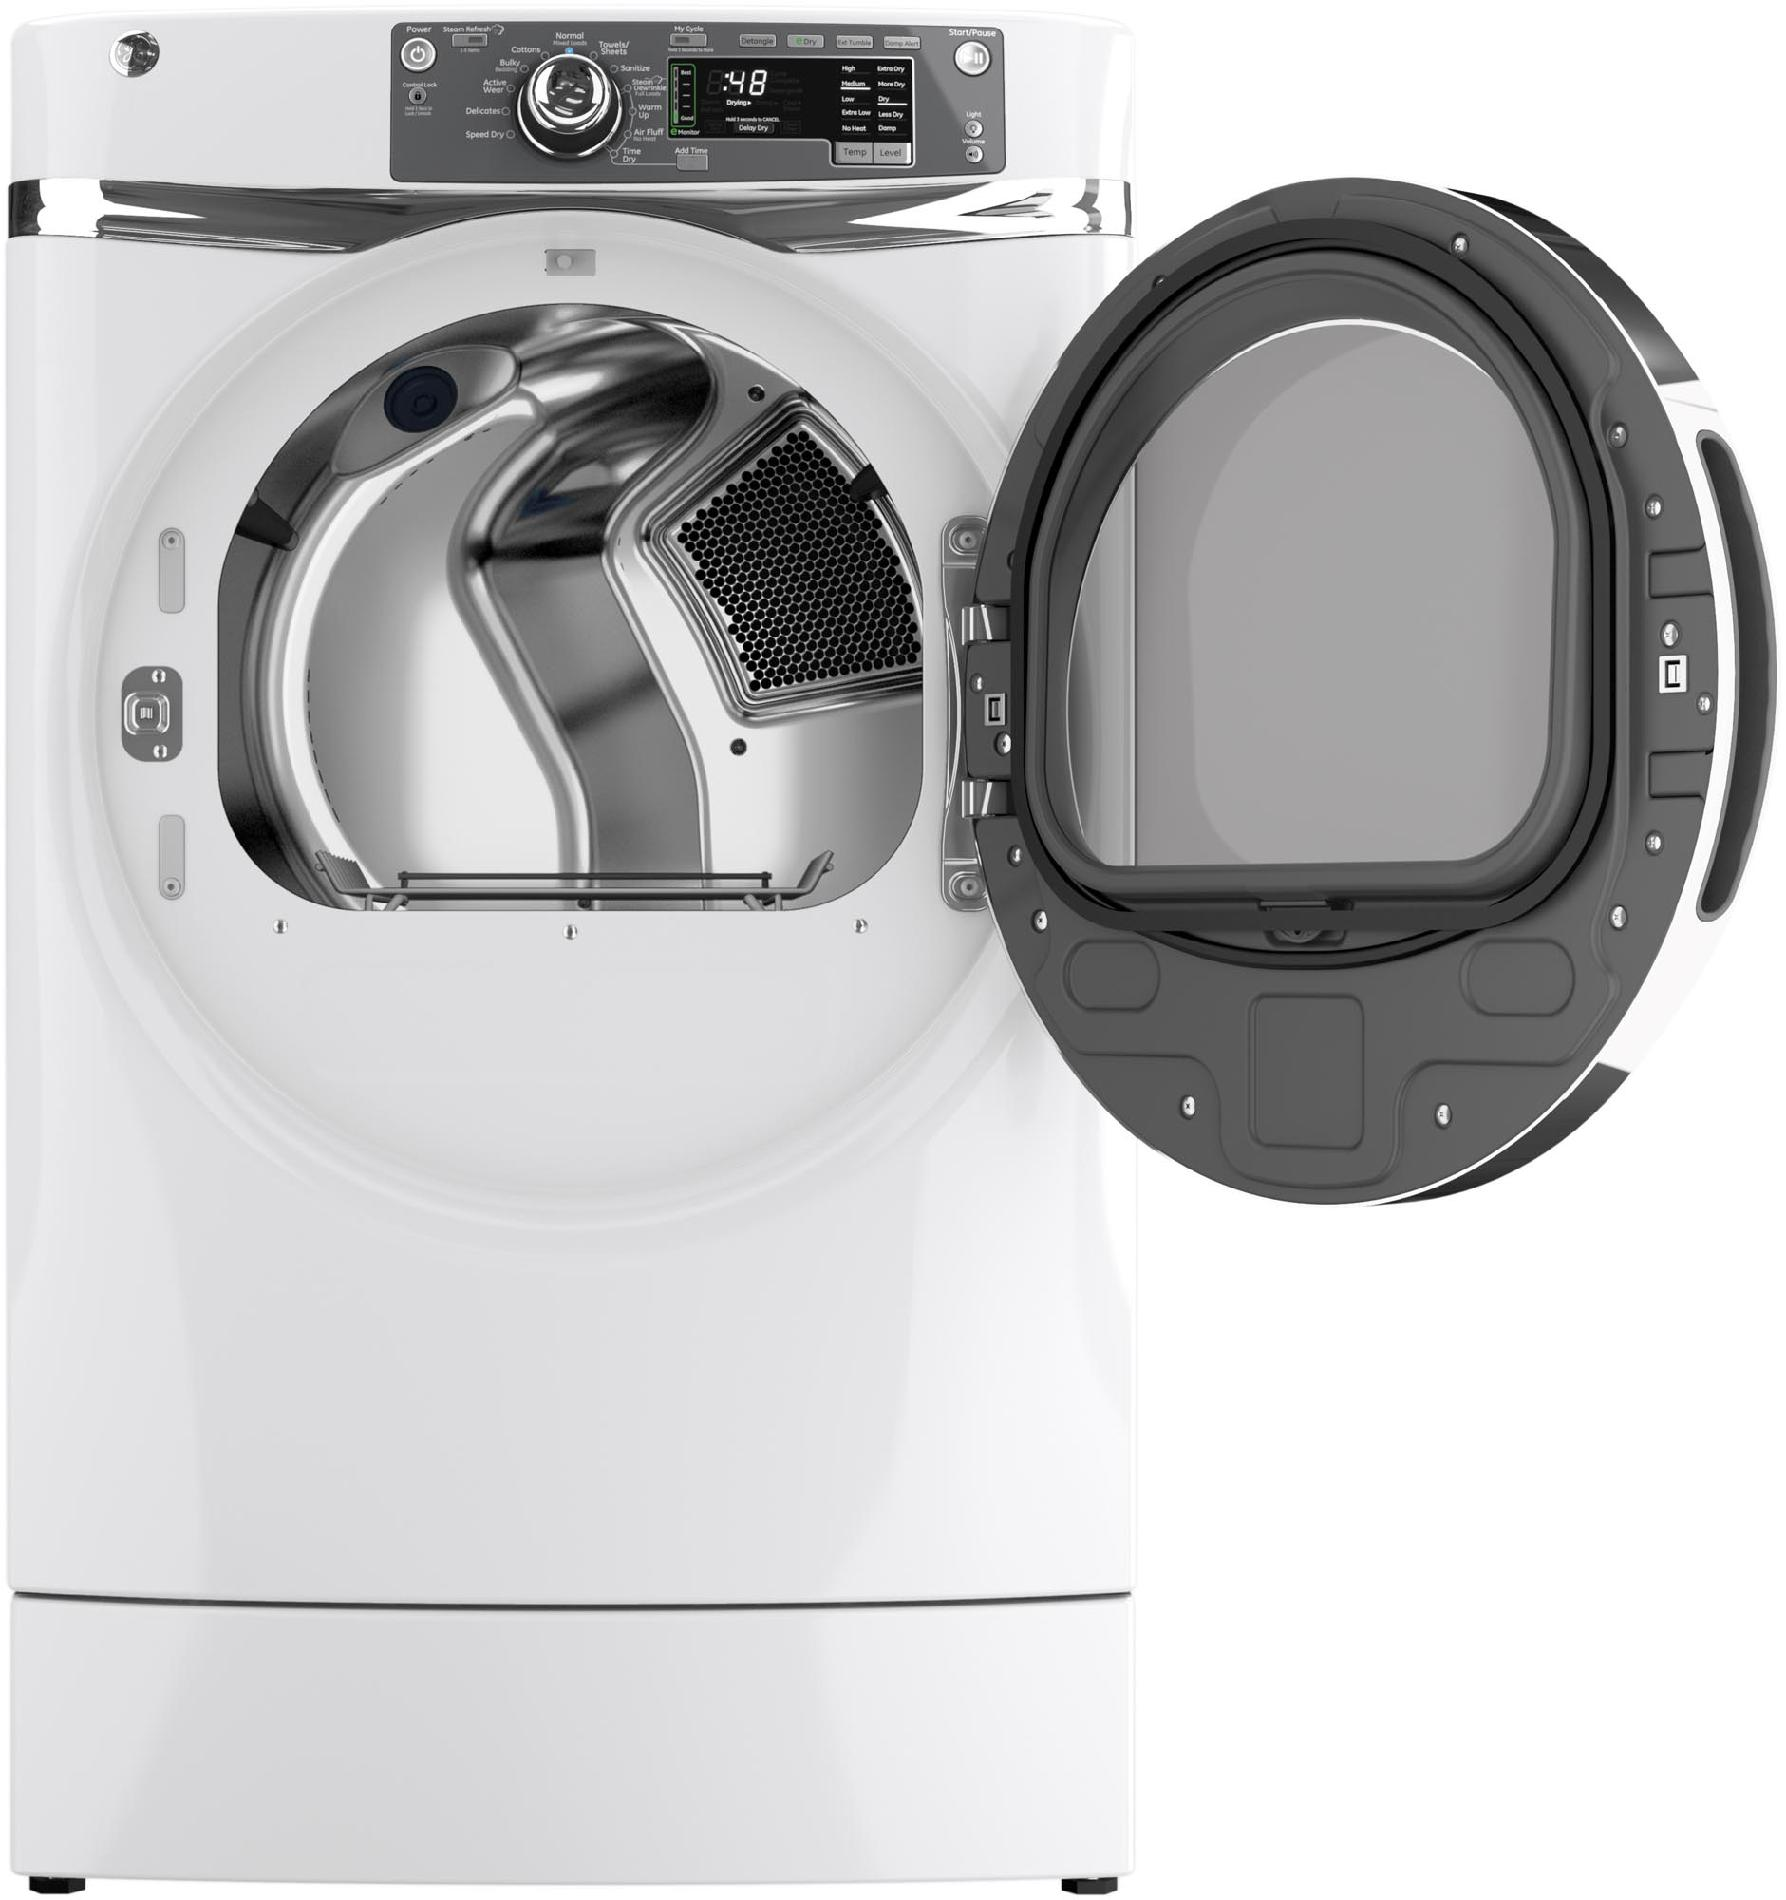 GE Appliances GFDR480GFWW 8.3 cu. ft. RightHeight™ Design Gas Dryer w/ Steam - White